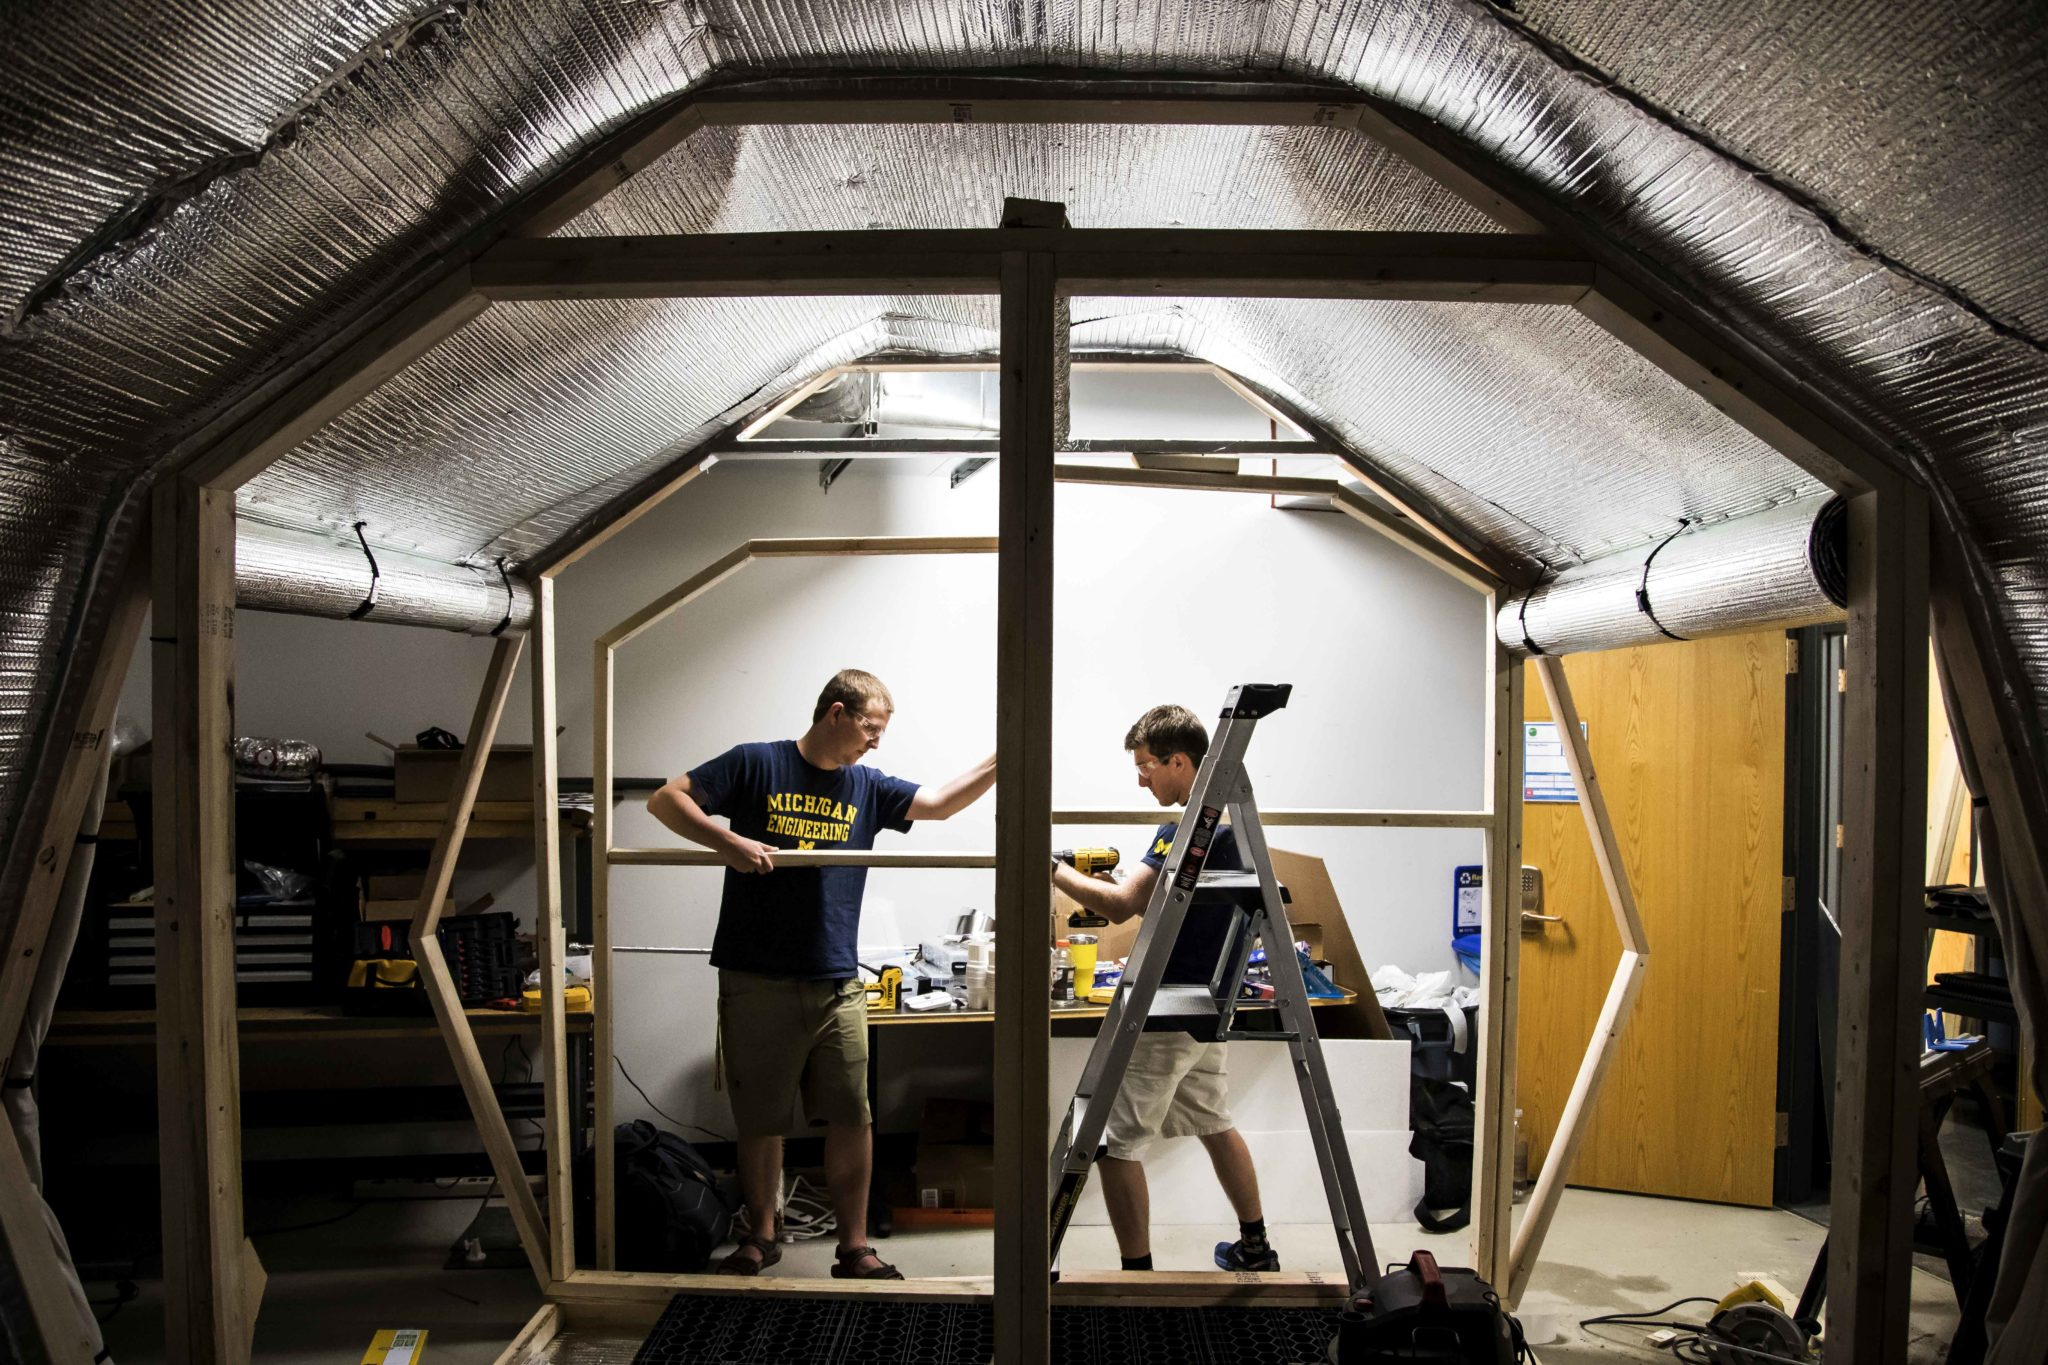 Members of the Michigan Bioastronautics and Life Support Systems (BLiSS) team construct a Mars Habitat in the basement of the Space Research Building.